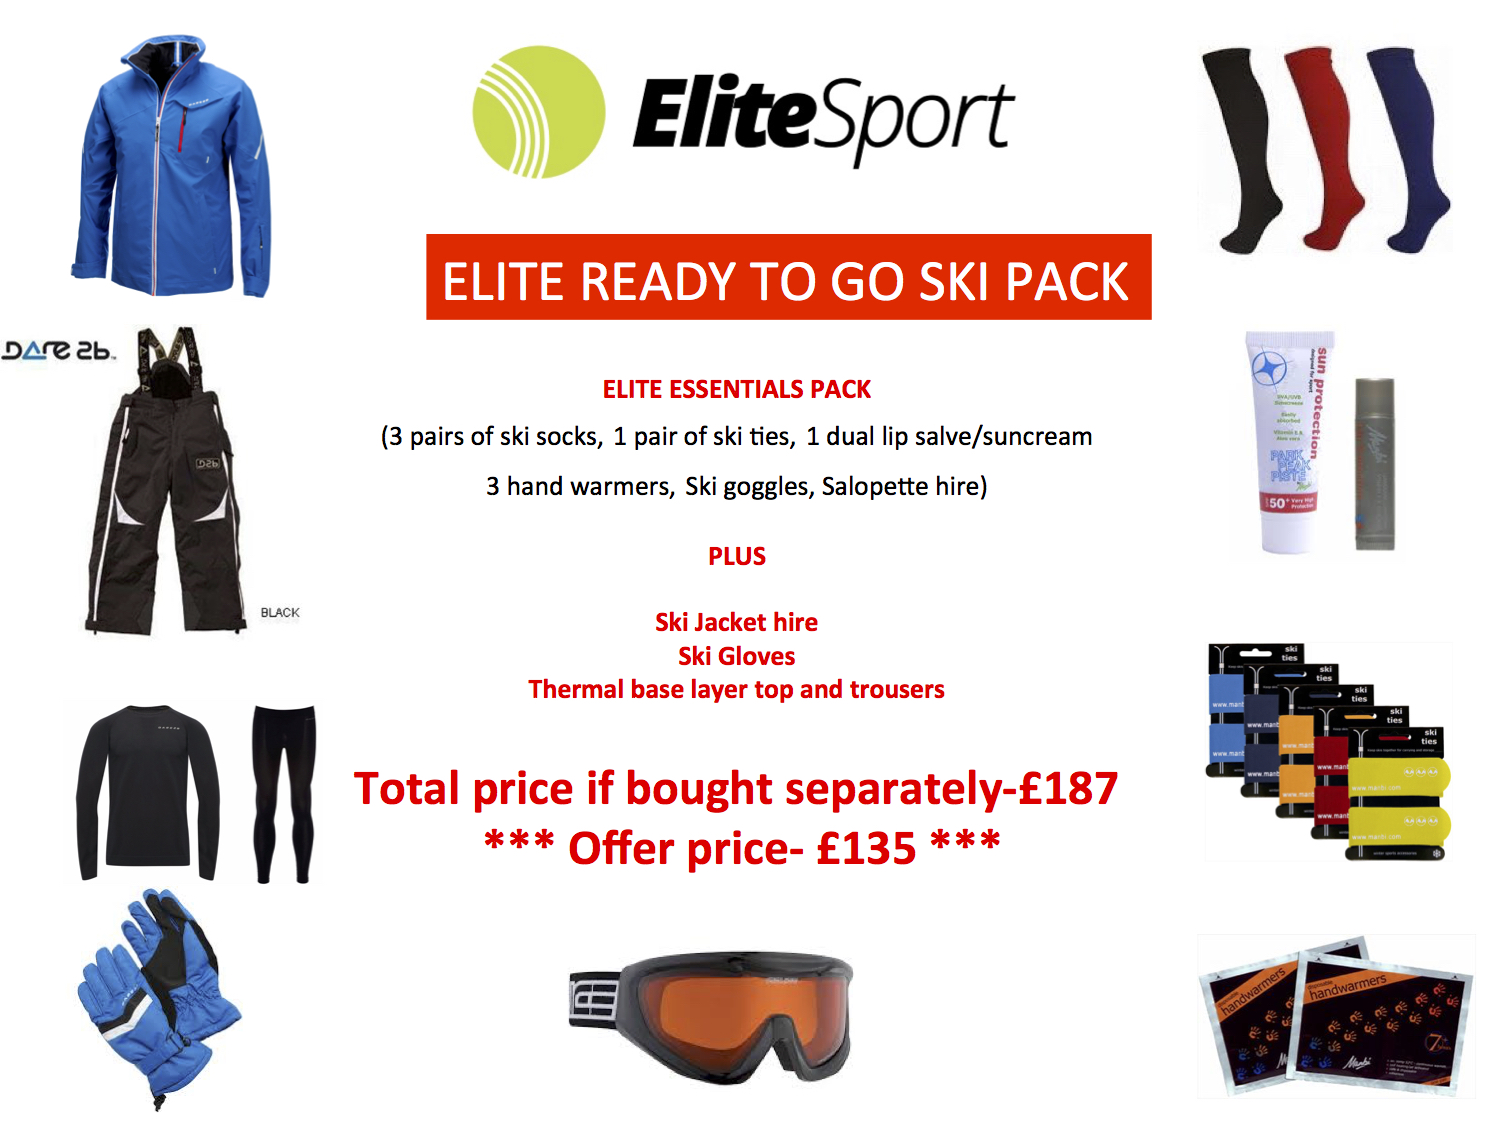 Elite Ready to Go Ski Pack